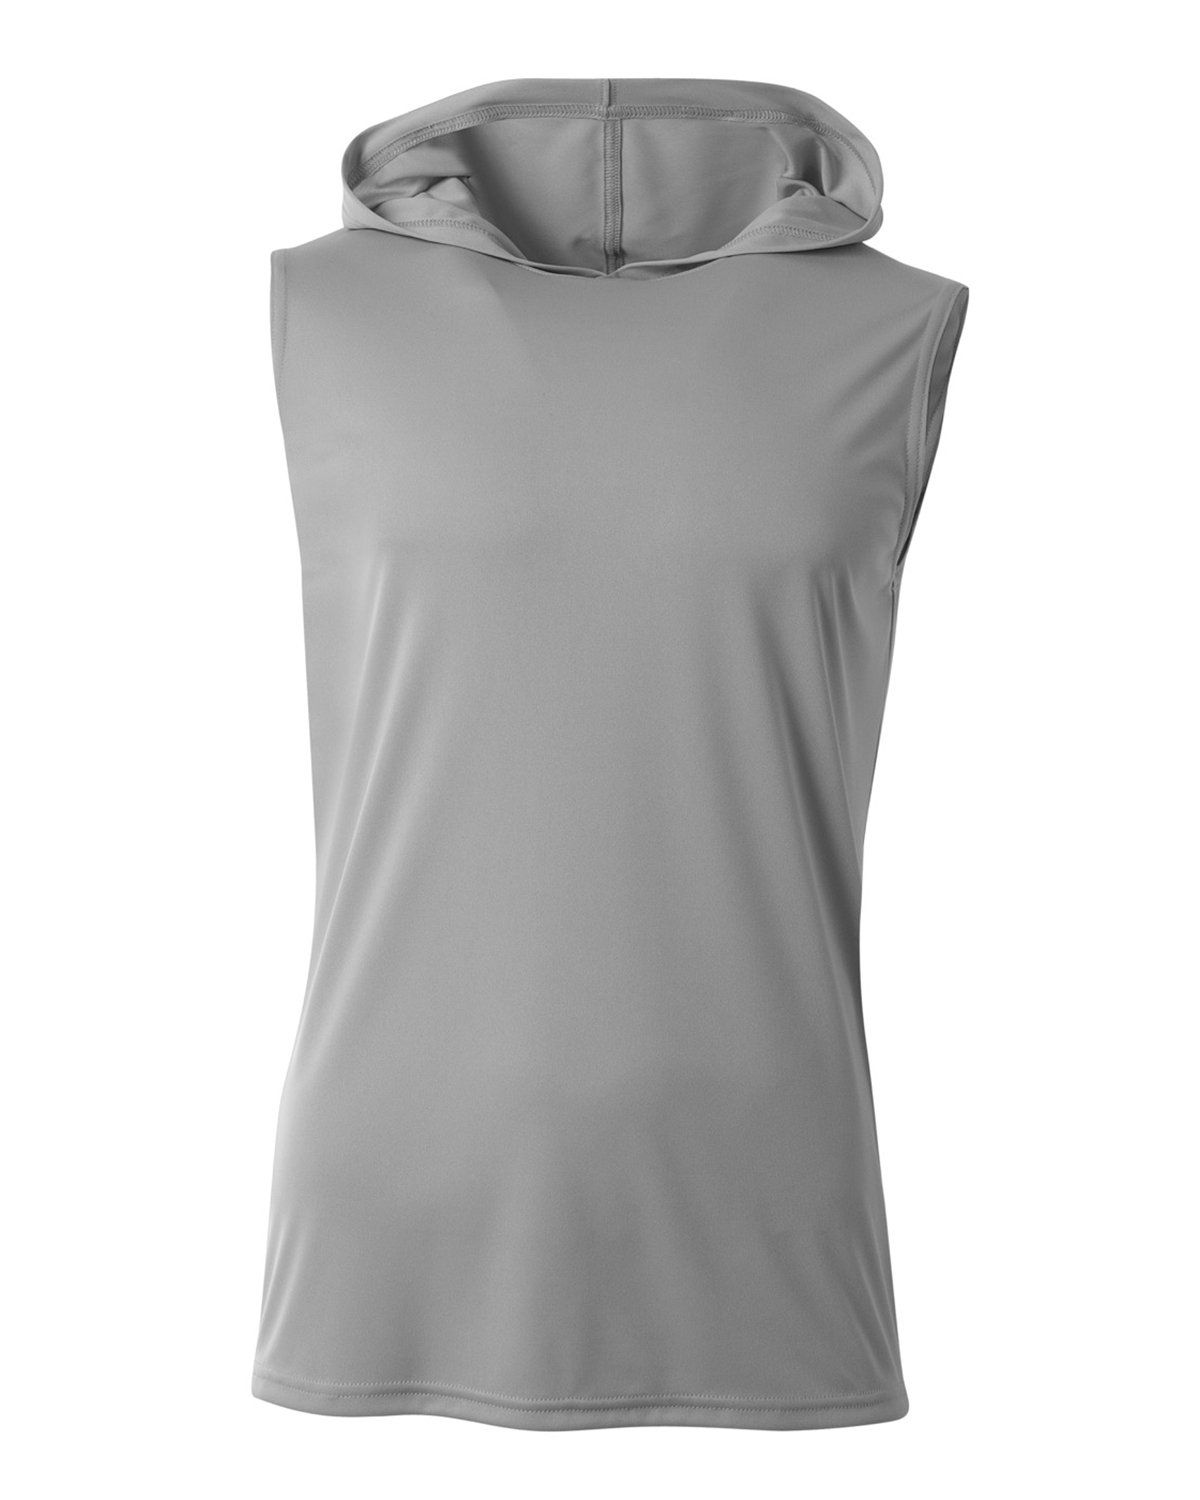 A4 Men's Cooling Performance Sleeveless Hooded T-shirt SILVER